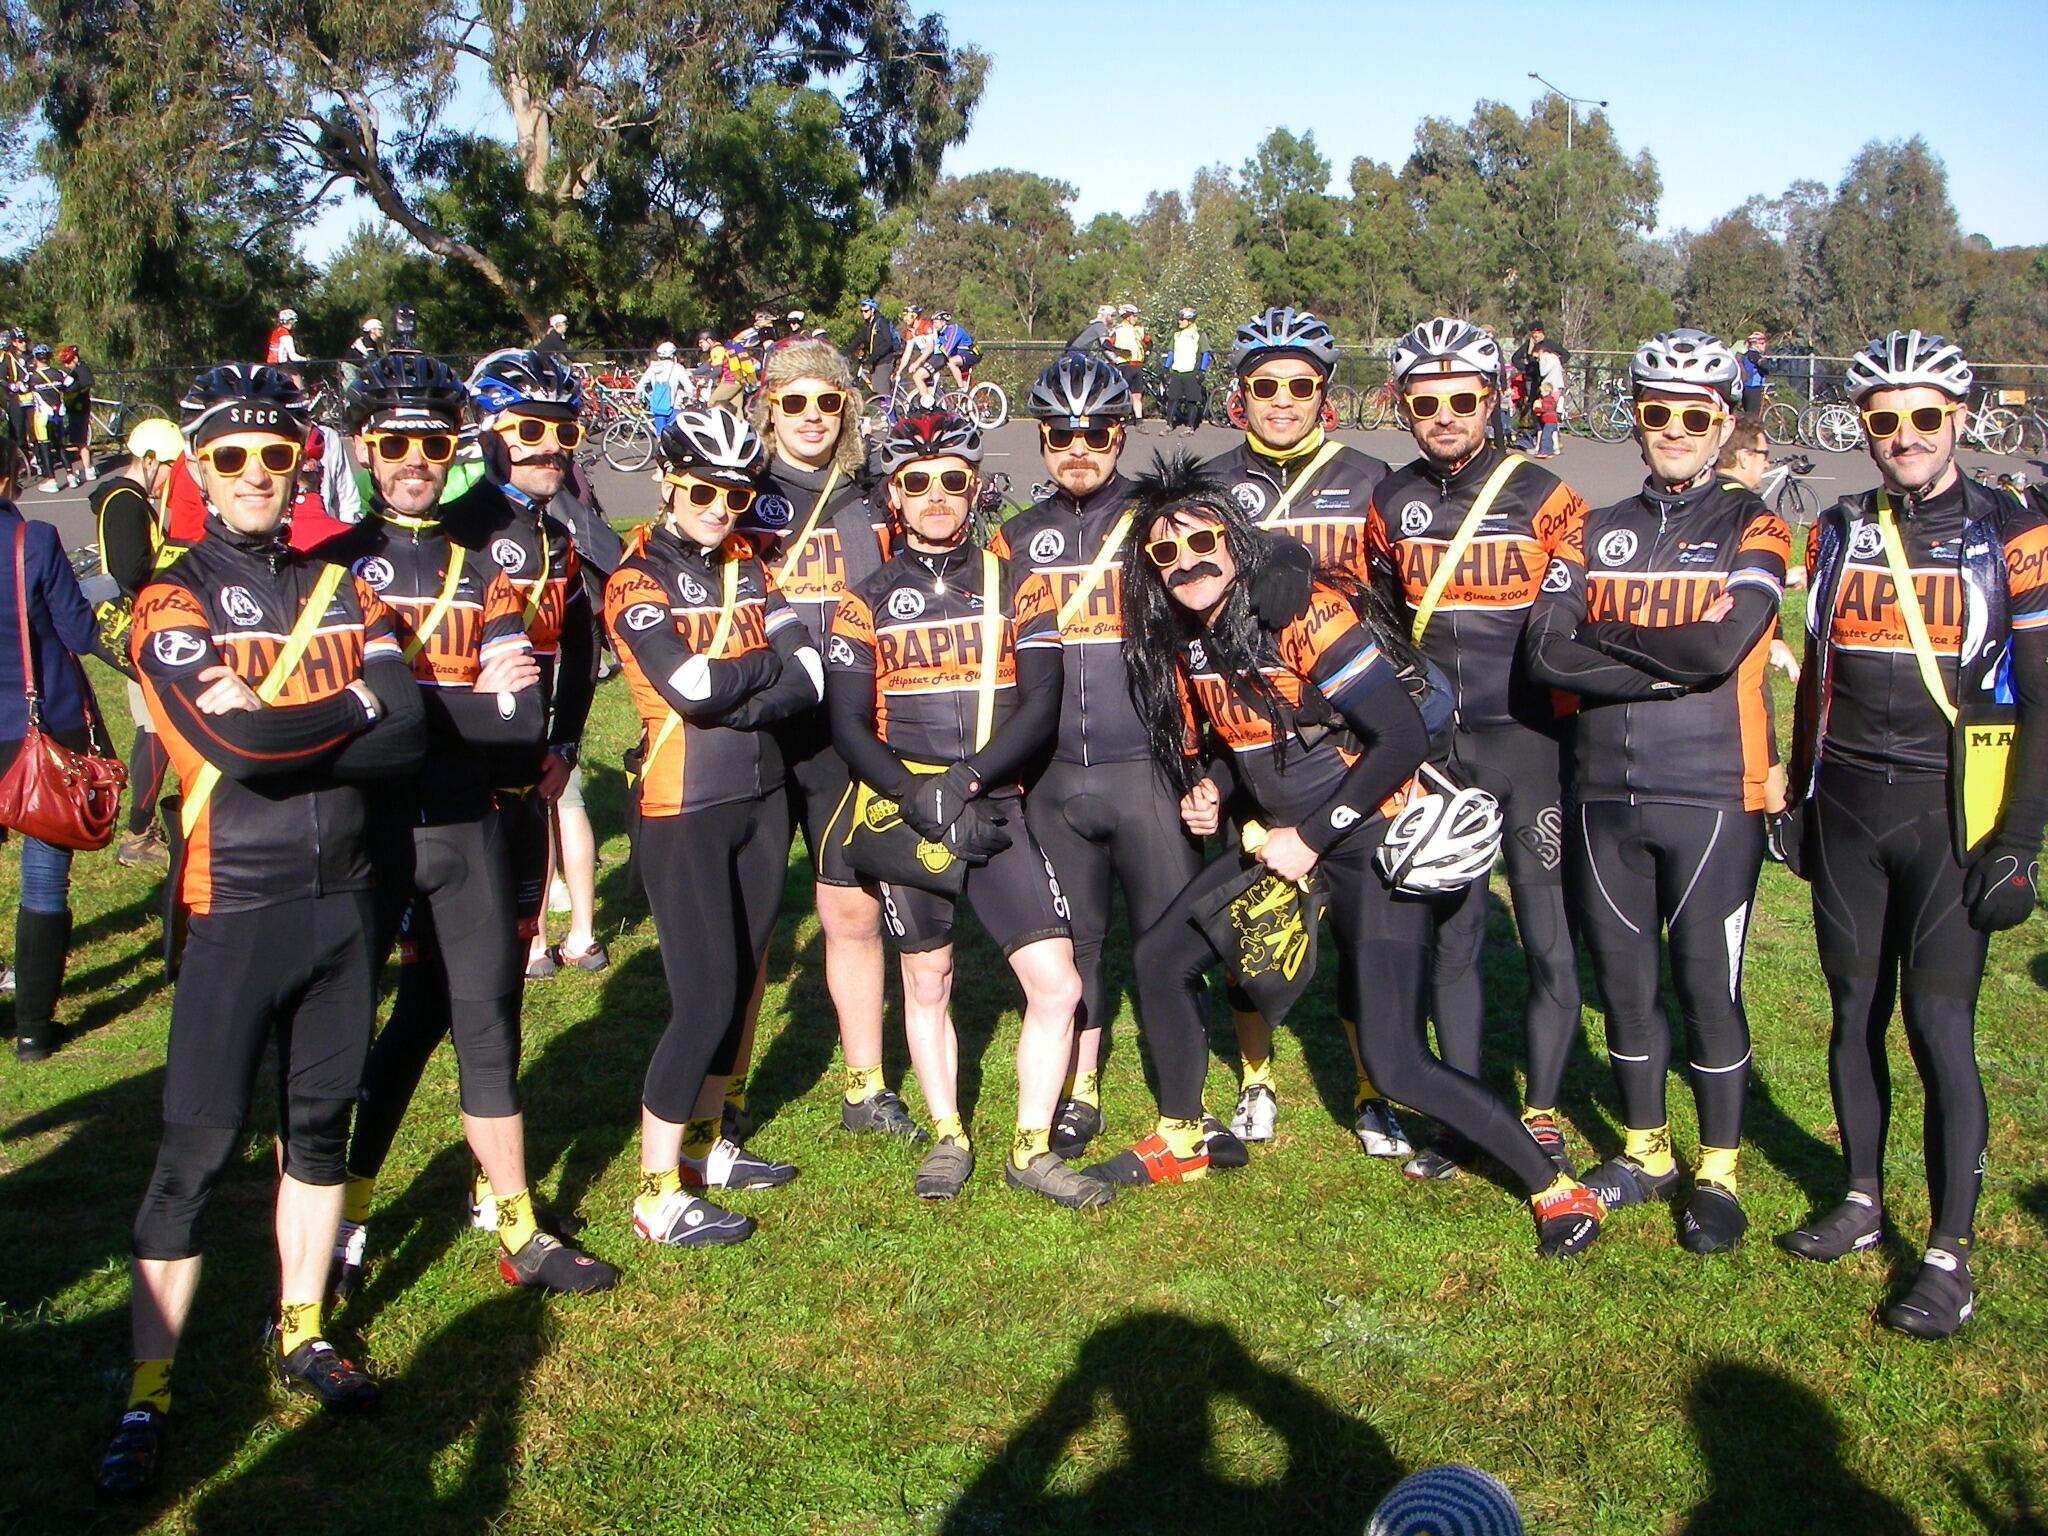 Team @raphiaracing line up for the start of #melburnroobaix #hipsterfree http://t.co/D2uMdnhS78